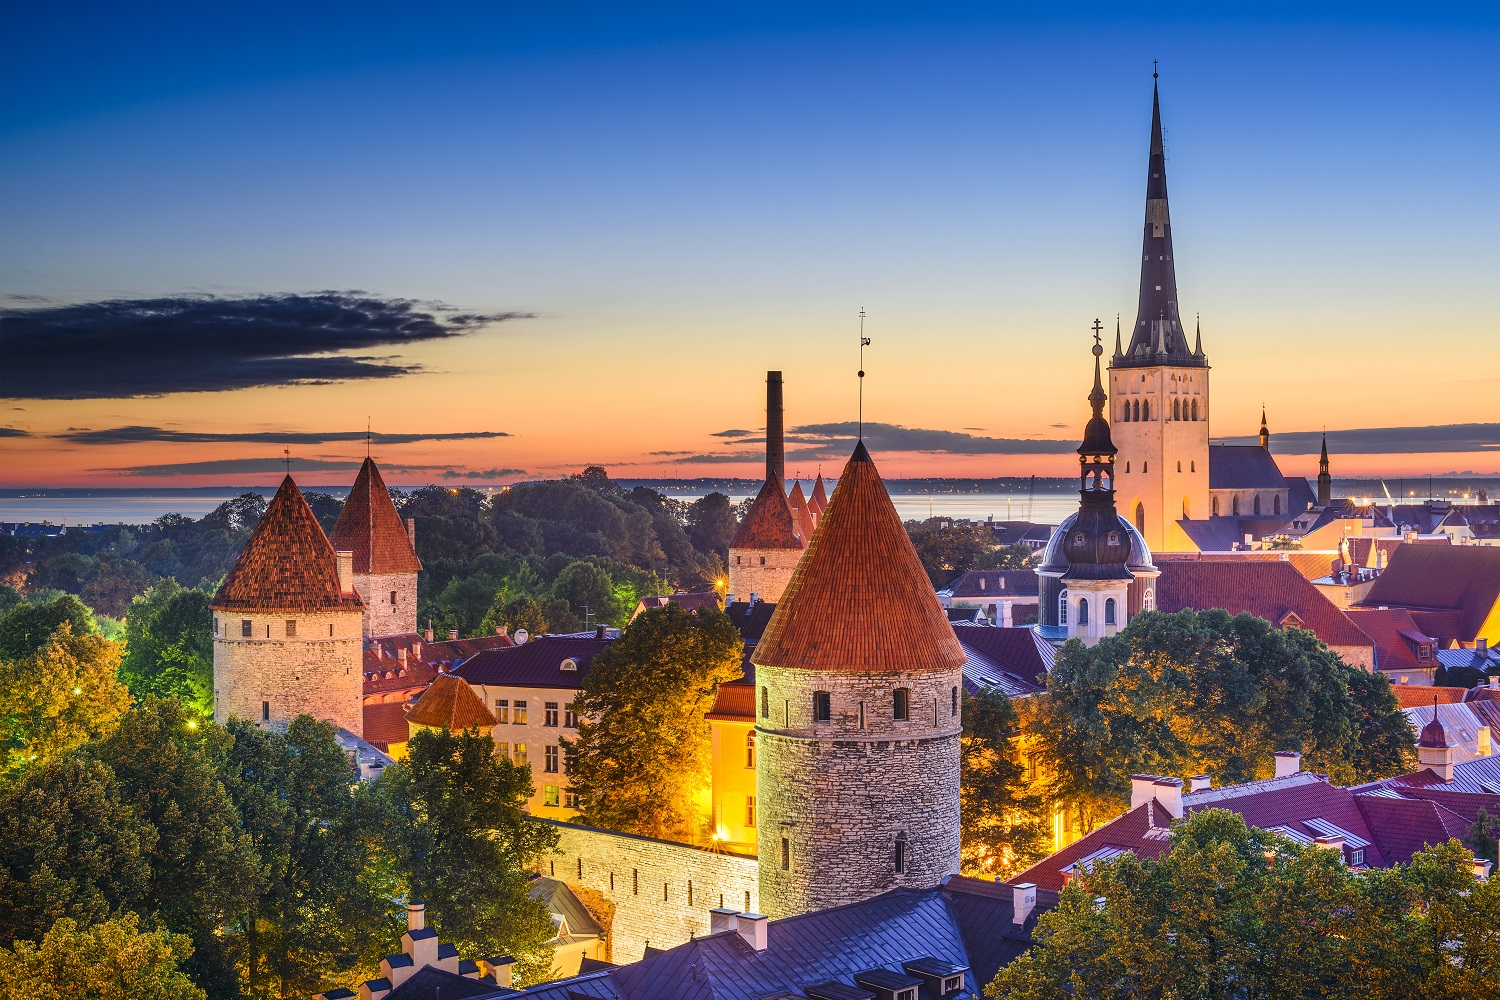 10 charming walled cities in Europe